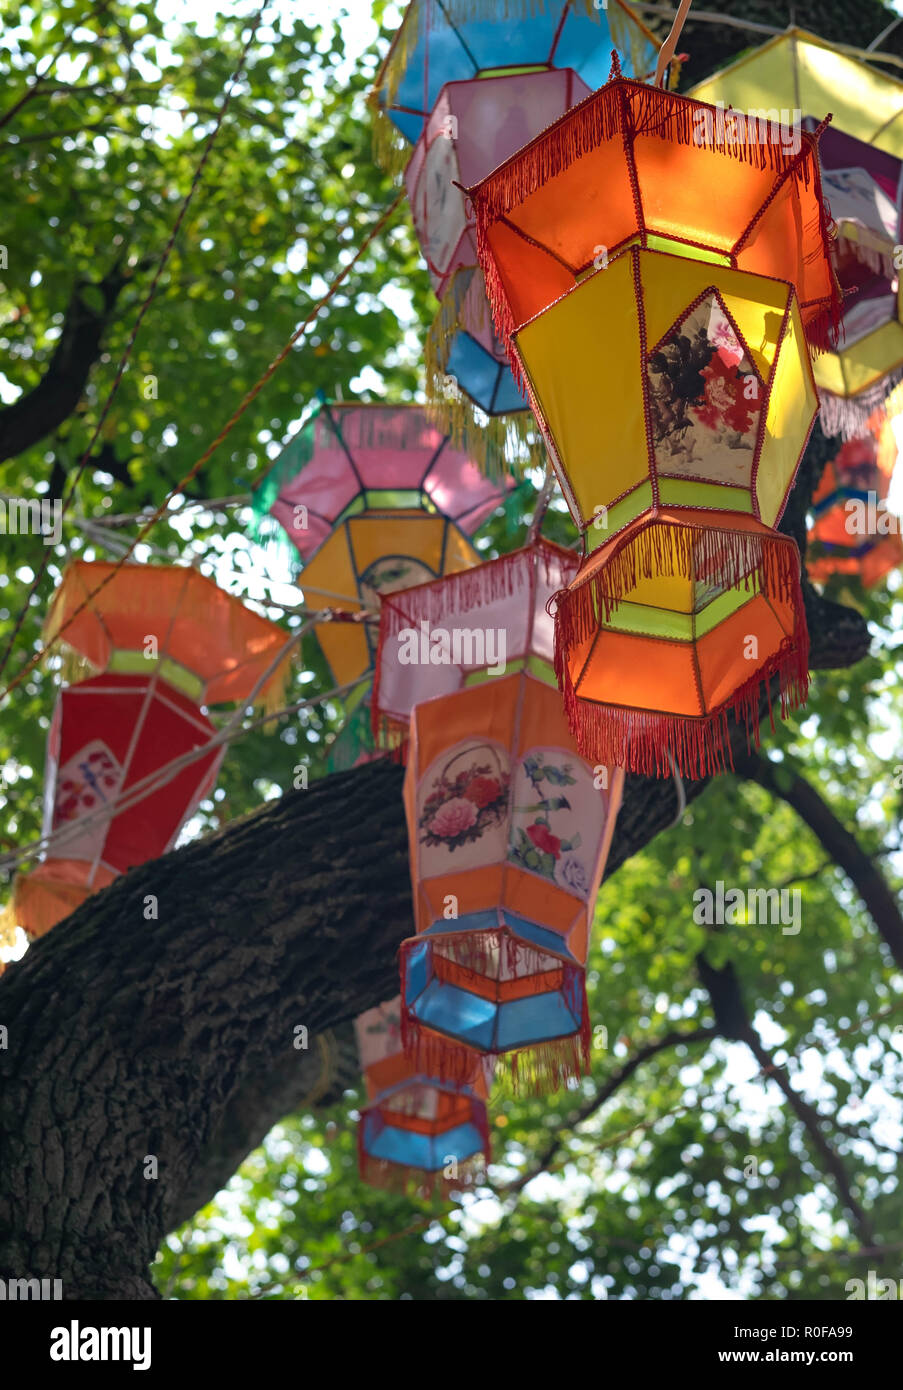 Huge Tree Being Decorated With Lots Of Lanterns Hanging On The Branches Multicolor Chinese Lantern Hanging With Trees In The Background Stock Photo Alamy